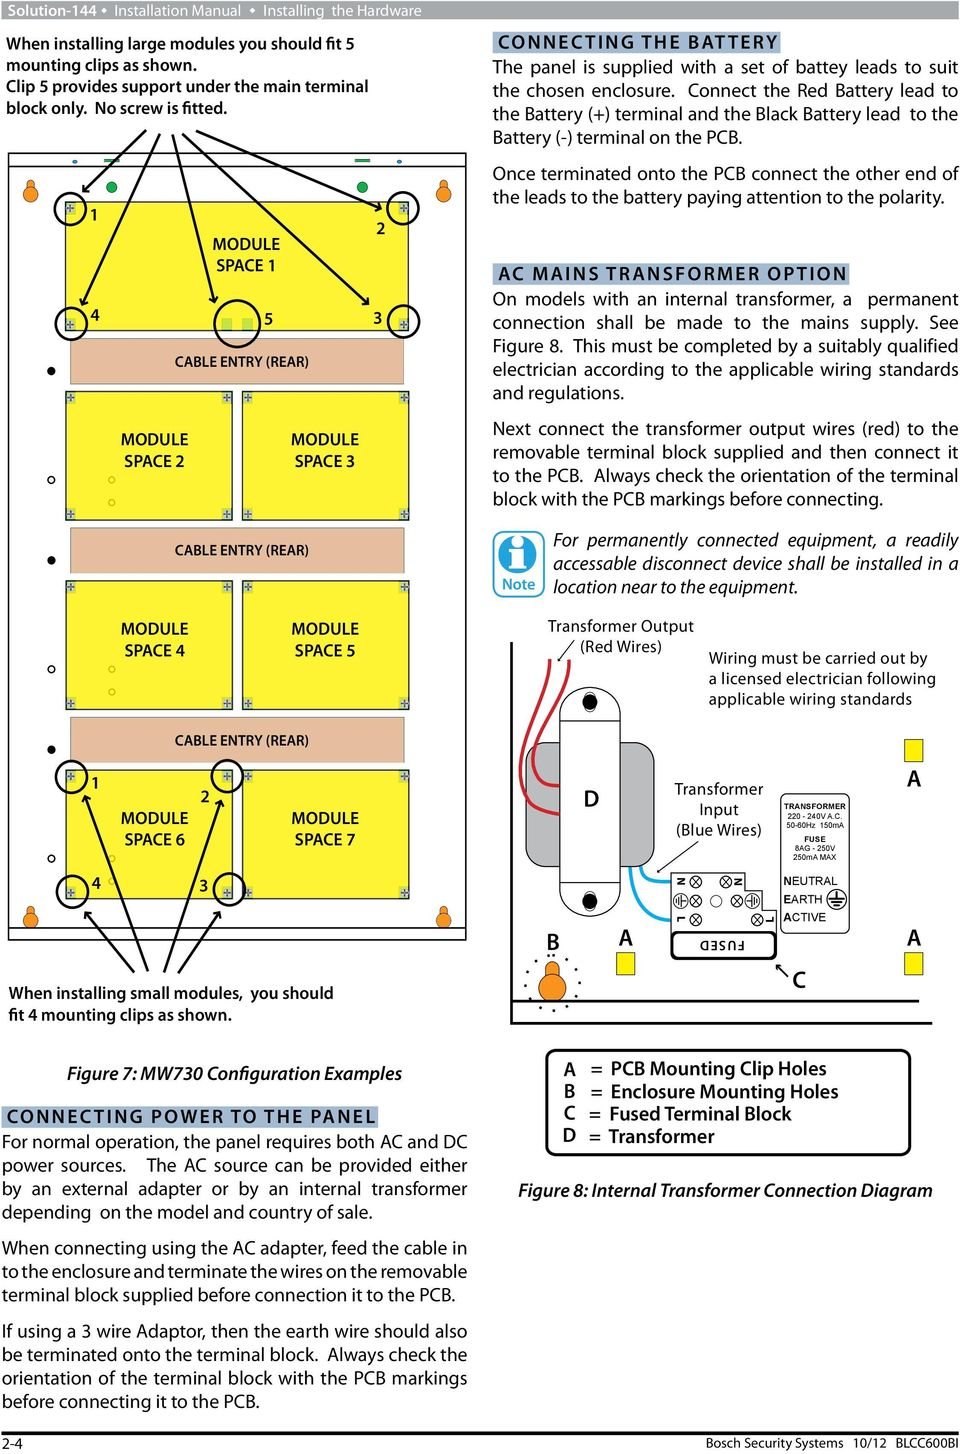 Solution 144 Security Systems Pdf Wiring And Transformer Connection Diagram 2 4 Connect The Red Battery Lead To Terminal Black